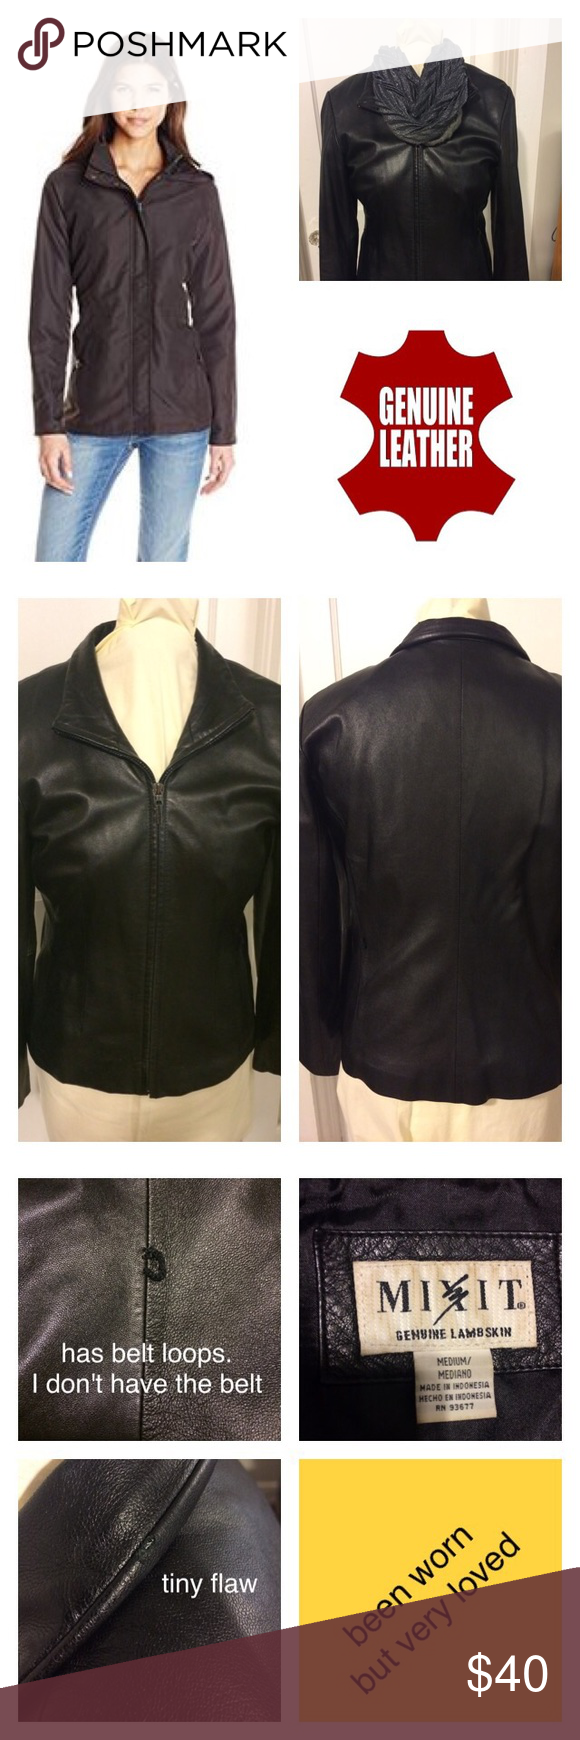 Leather jacket conditioner - Leather Jacket Conditioner 57